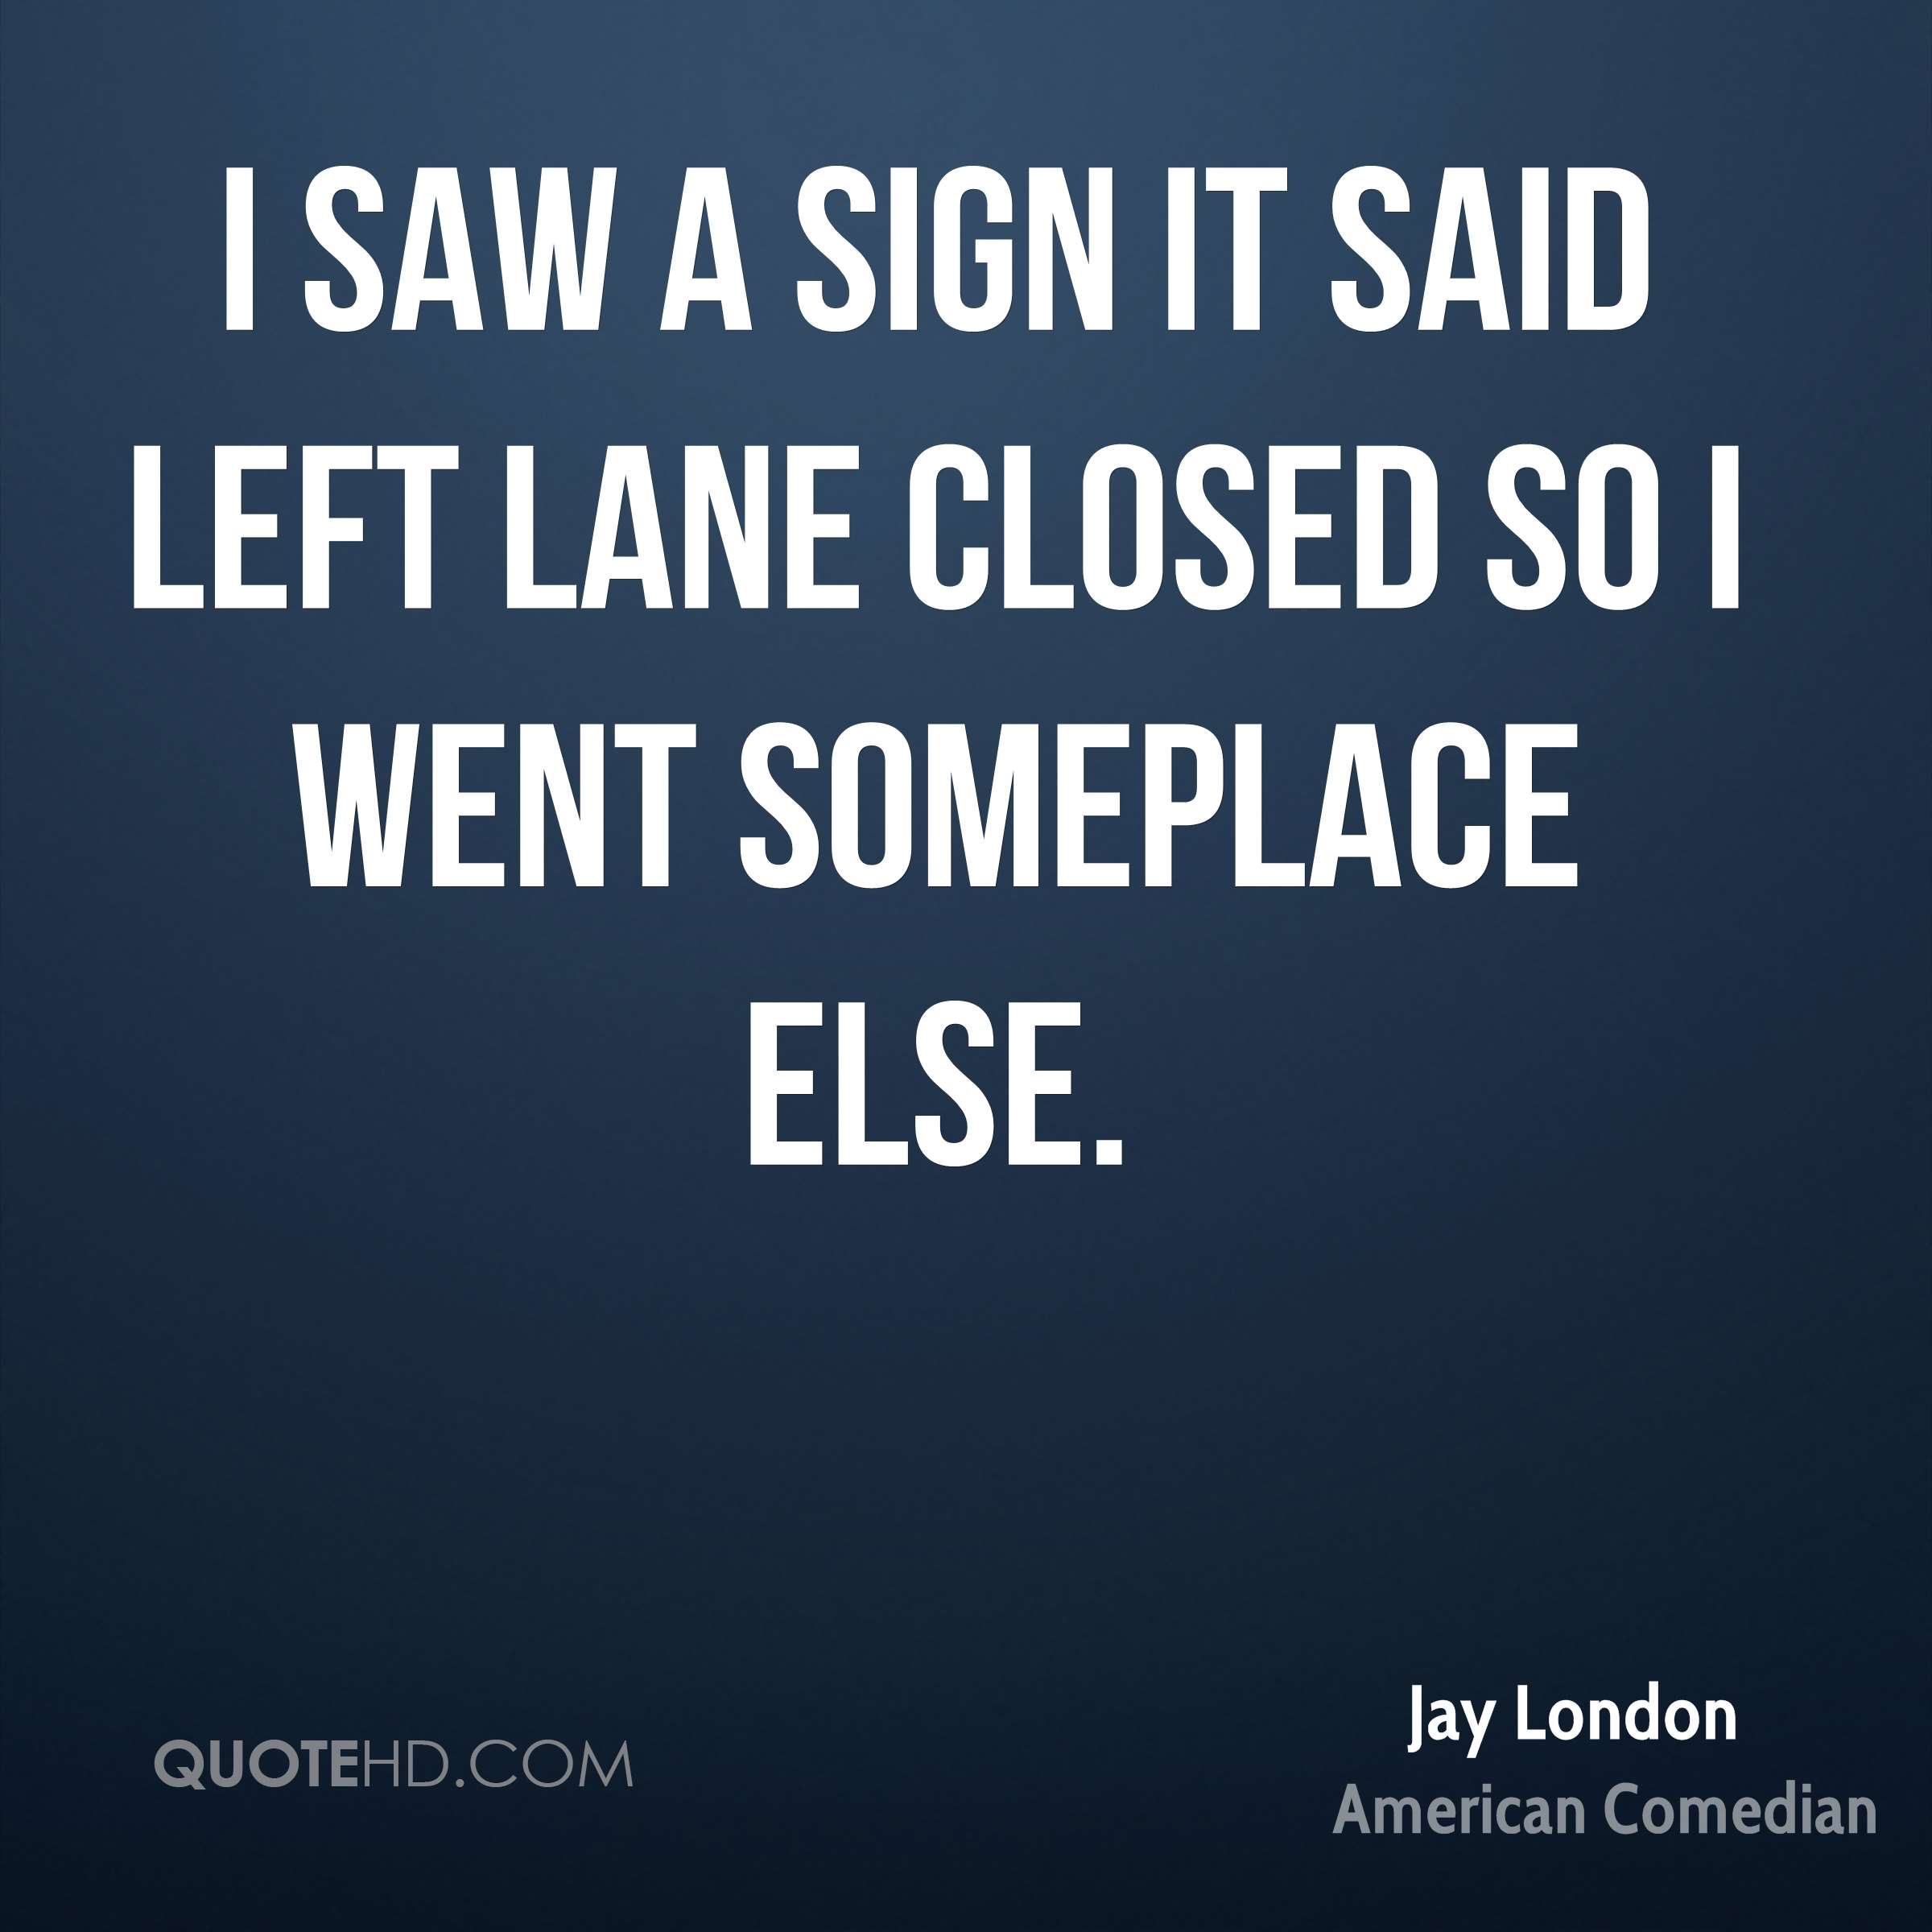 I saw a sign it said left lane closed so I went someplace else.